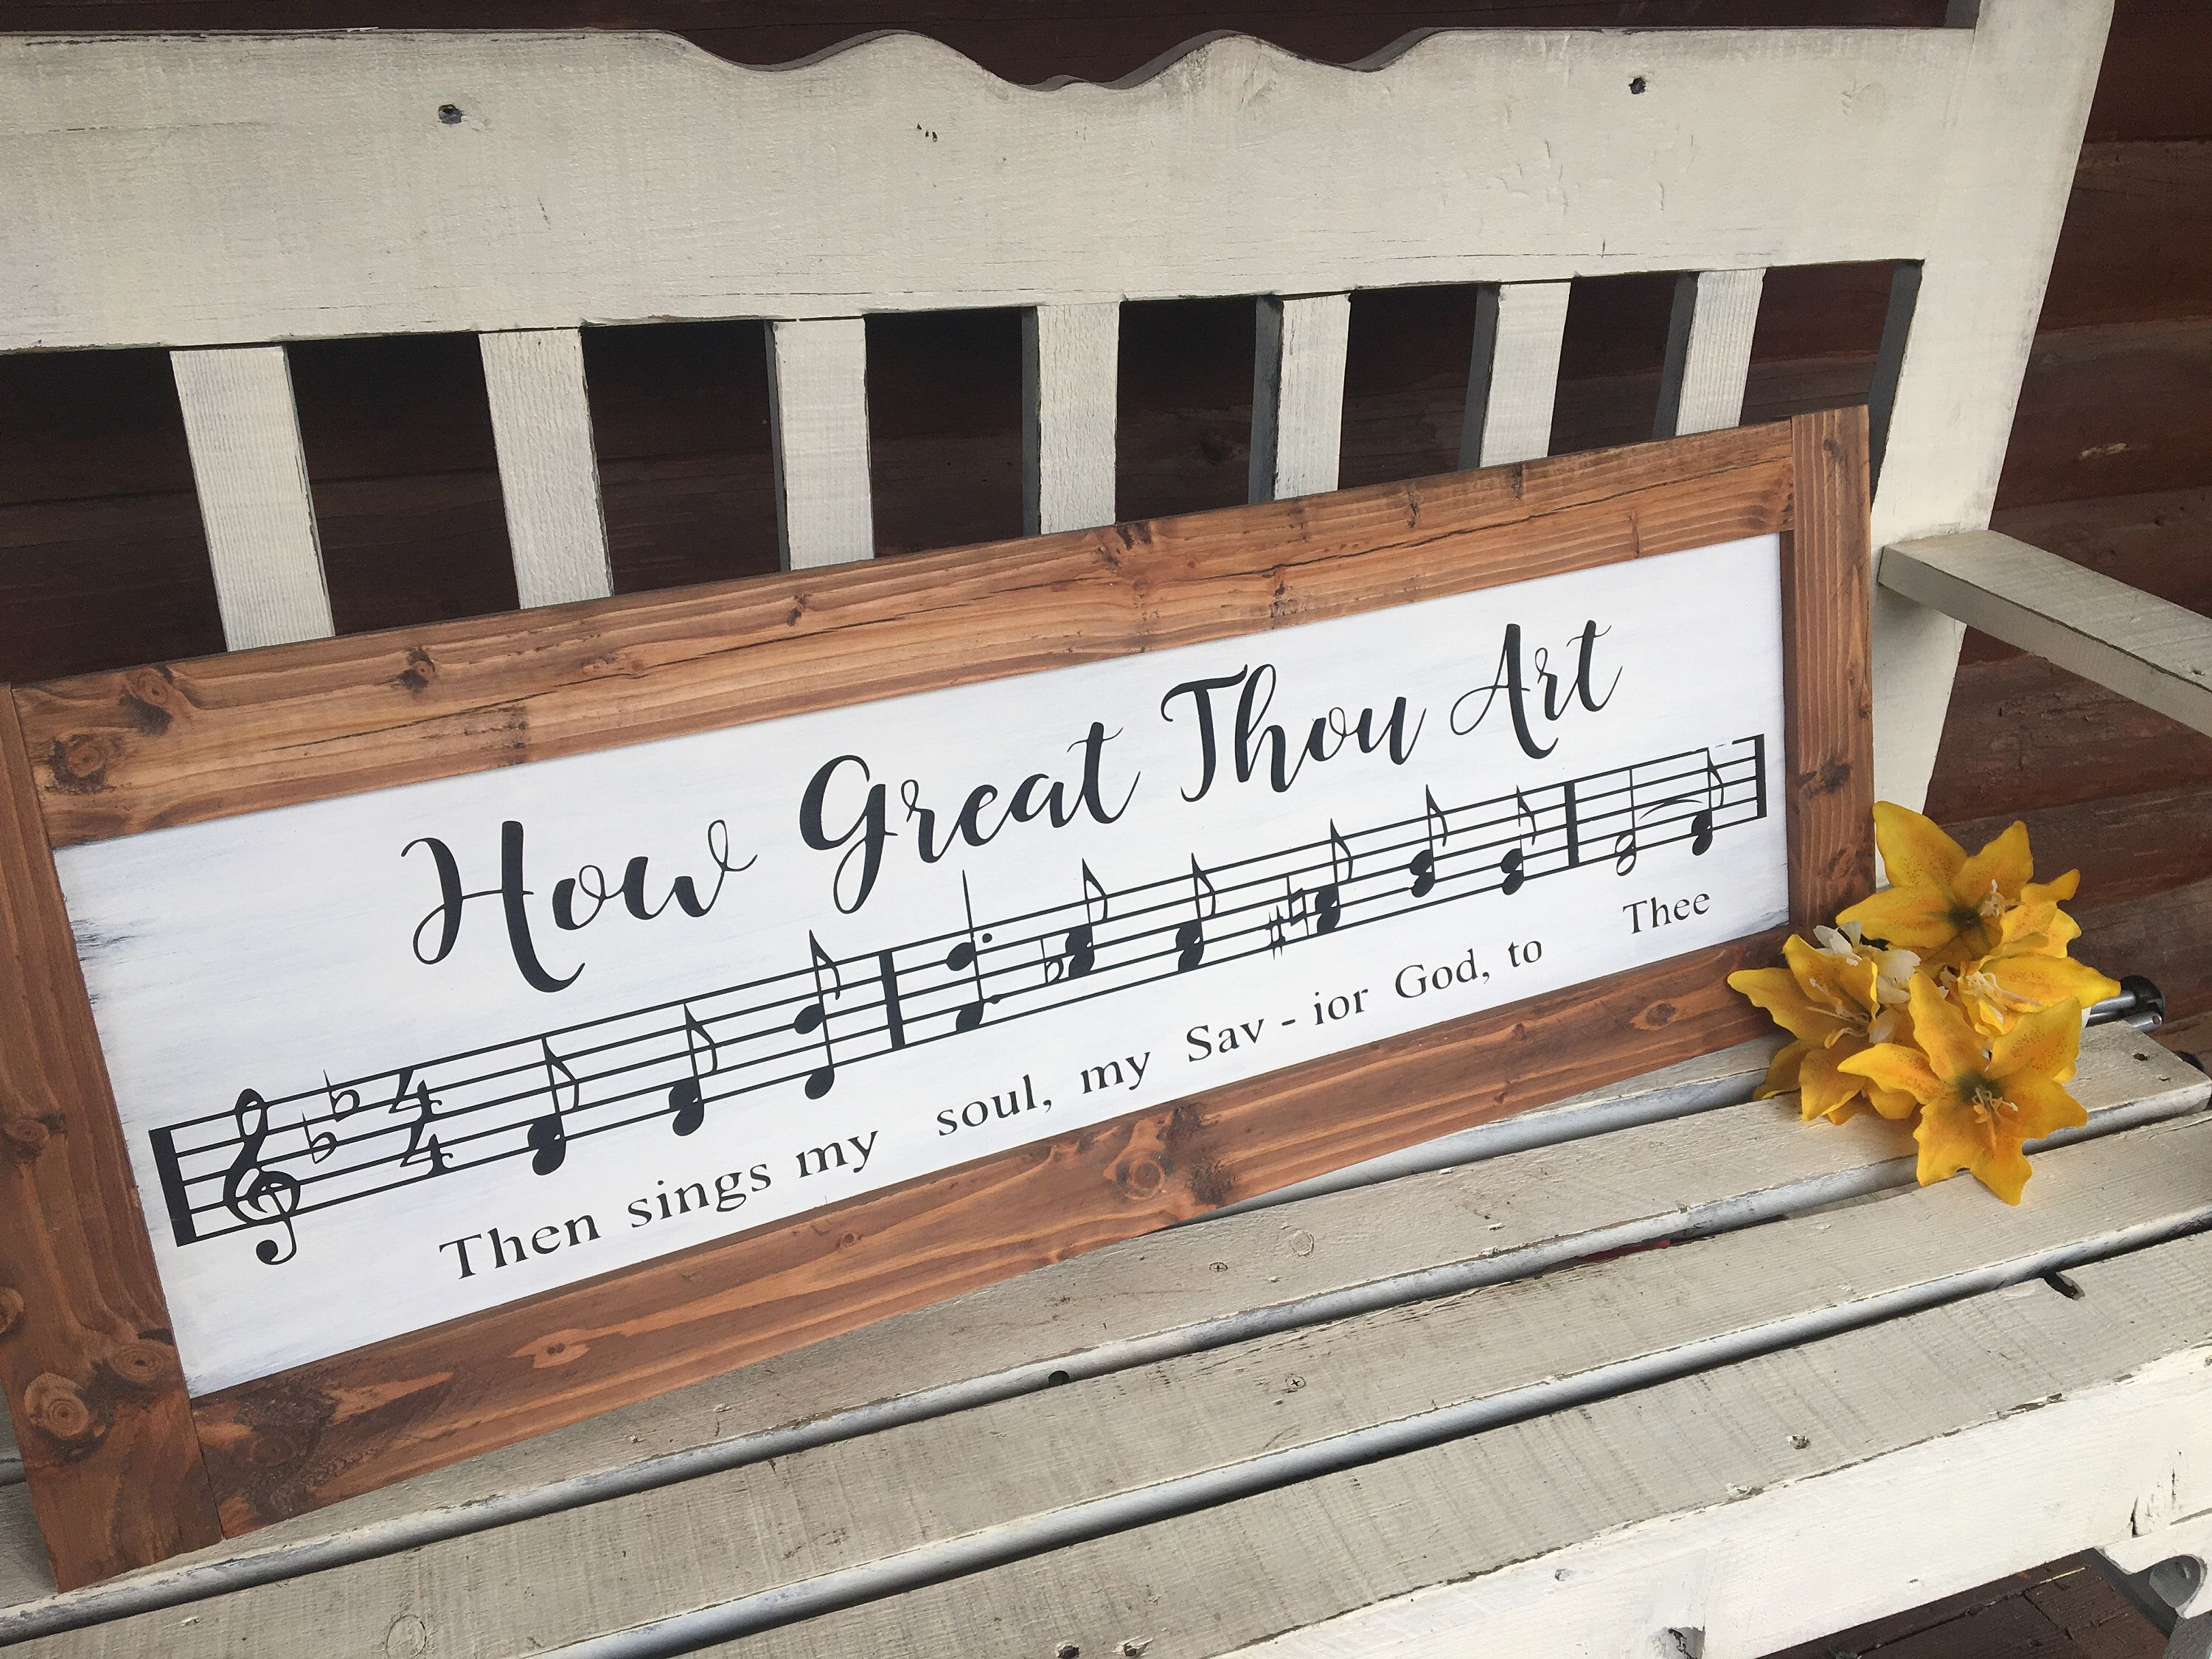 How Great Thou Art Sheet Music Art Music Sign Hymn Sign Farmhouse Sign Farmhouse Decor Music Lover Ch Scripture Wall Decor Rustic Wood Signs Unique Home Decor